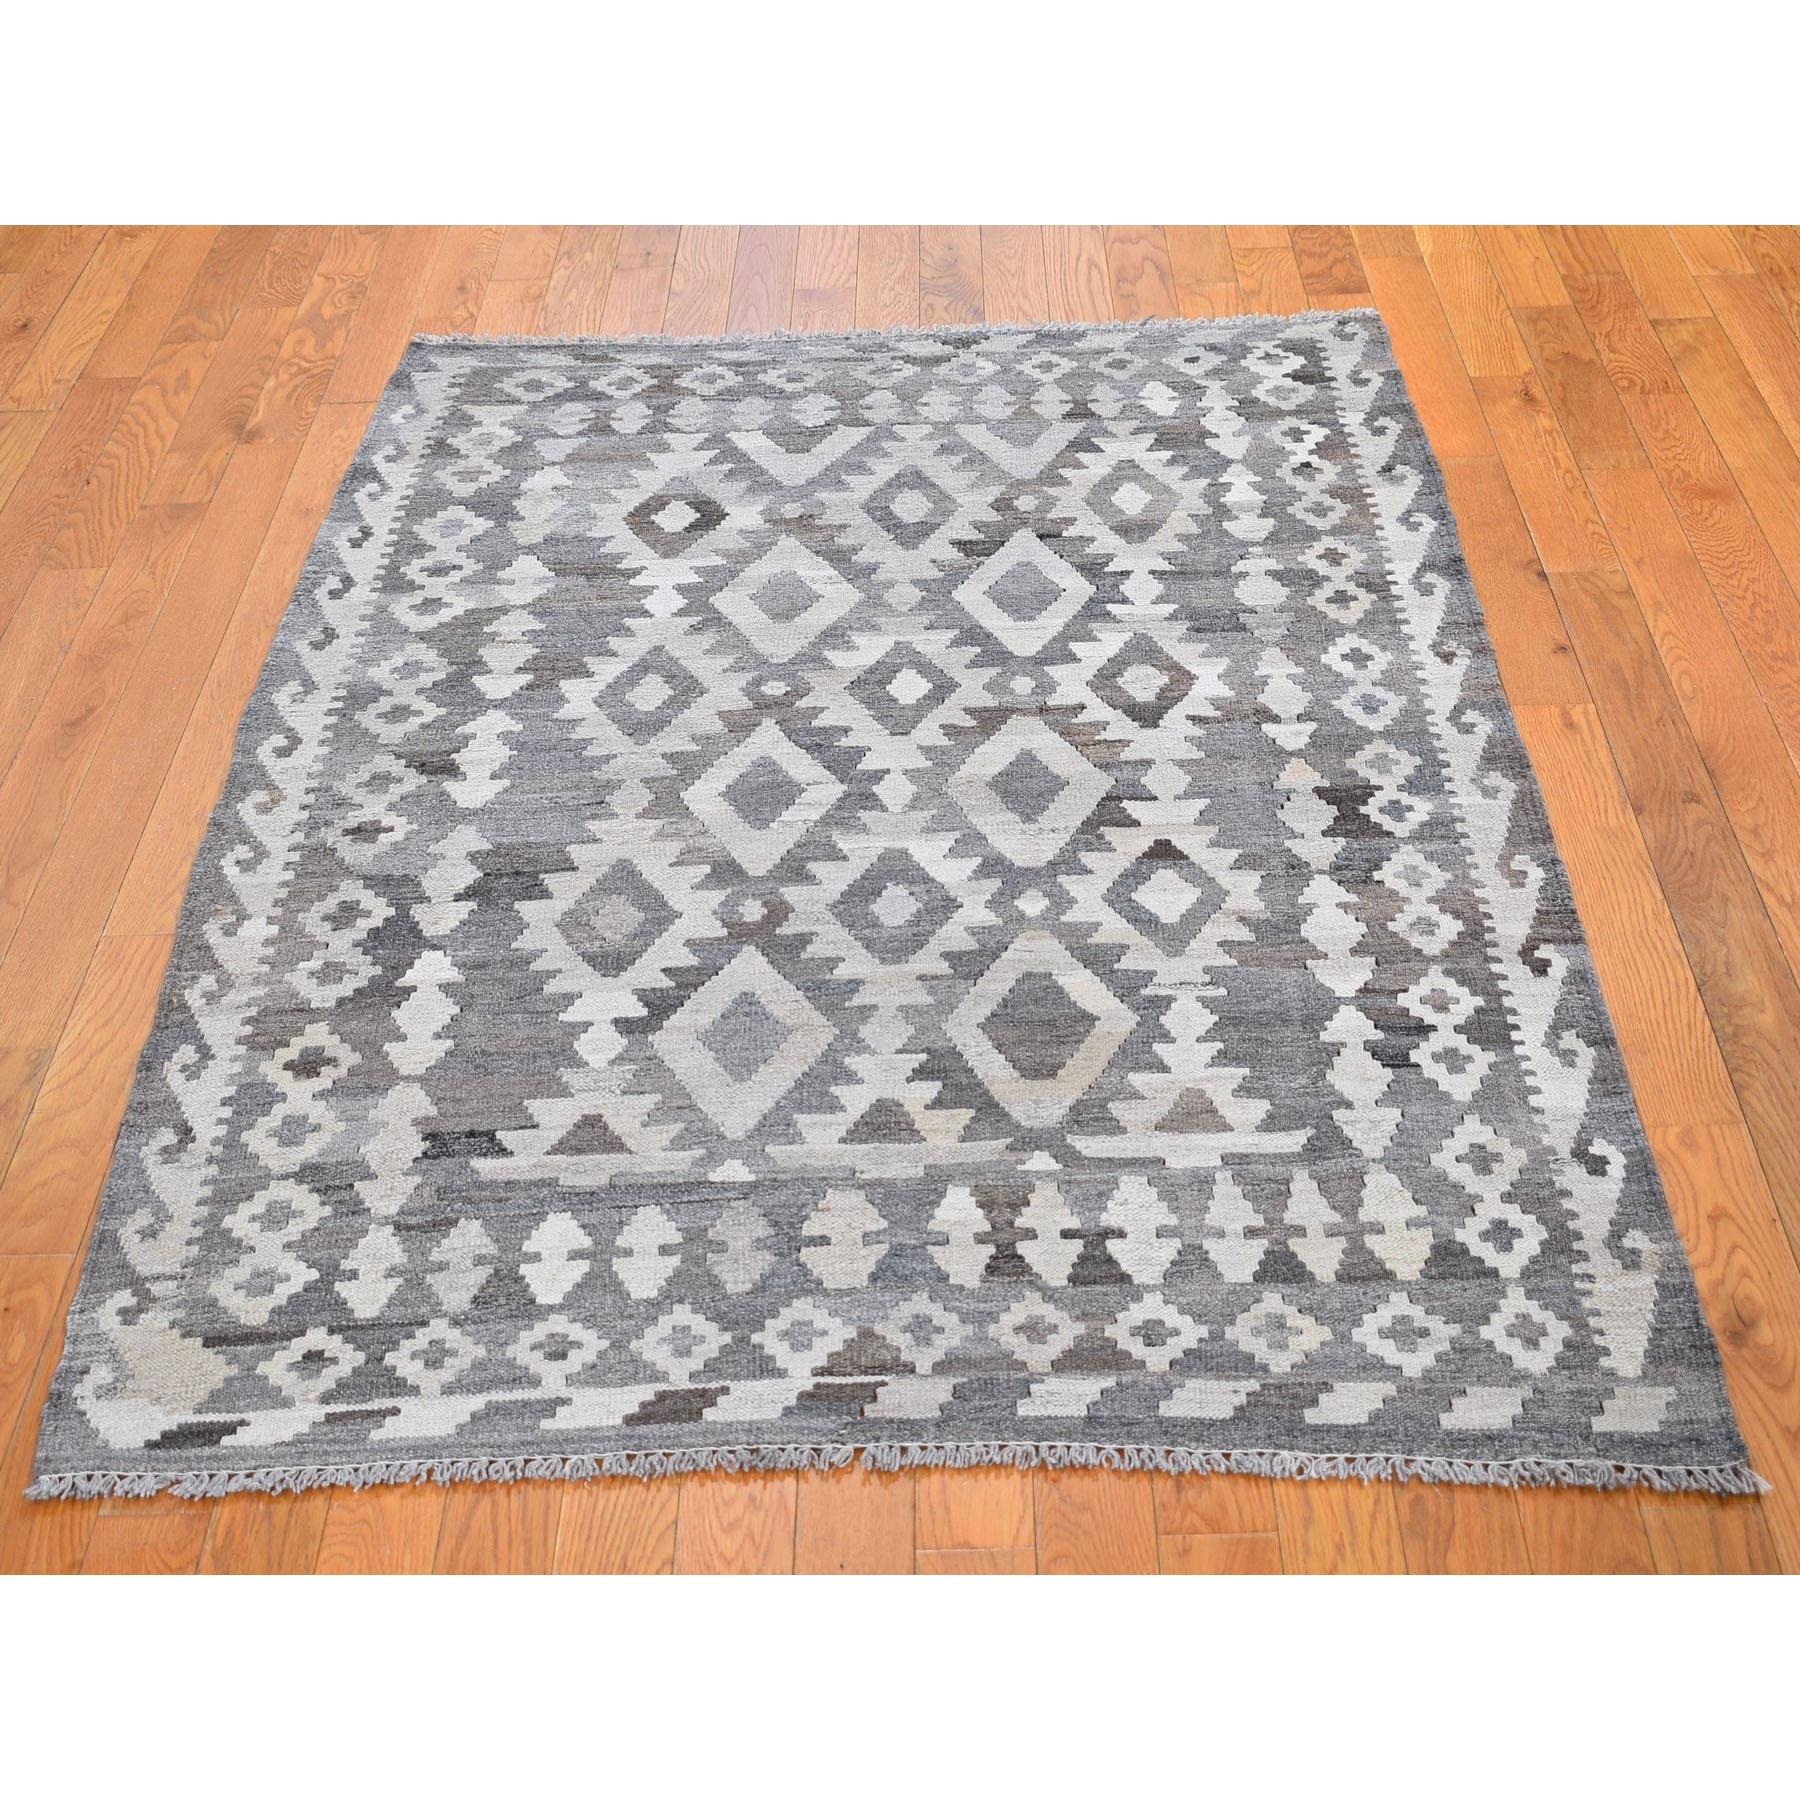 4-2 x5-9  Undyed Natural Wool Afghan Kilim Reversible Hand Woven Oriental Rug